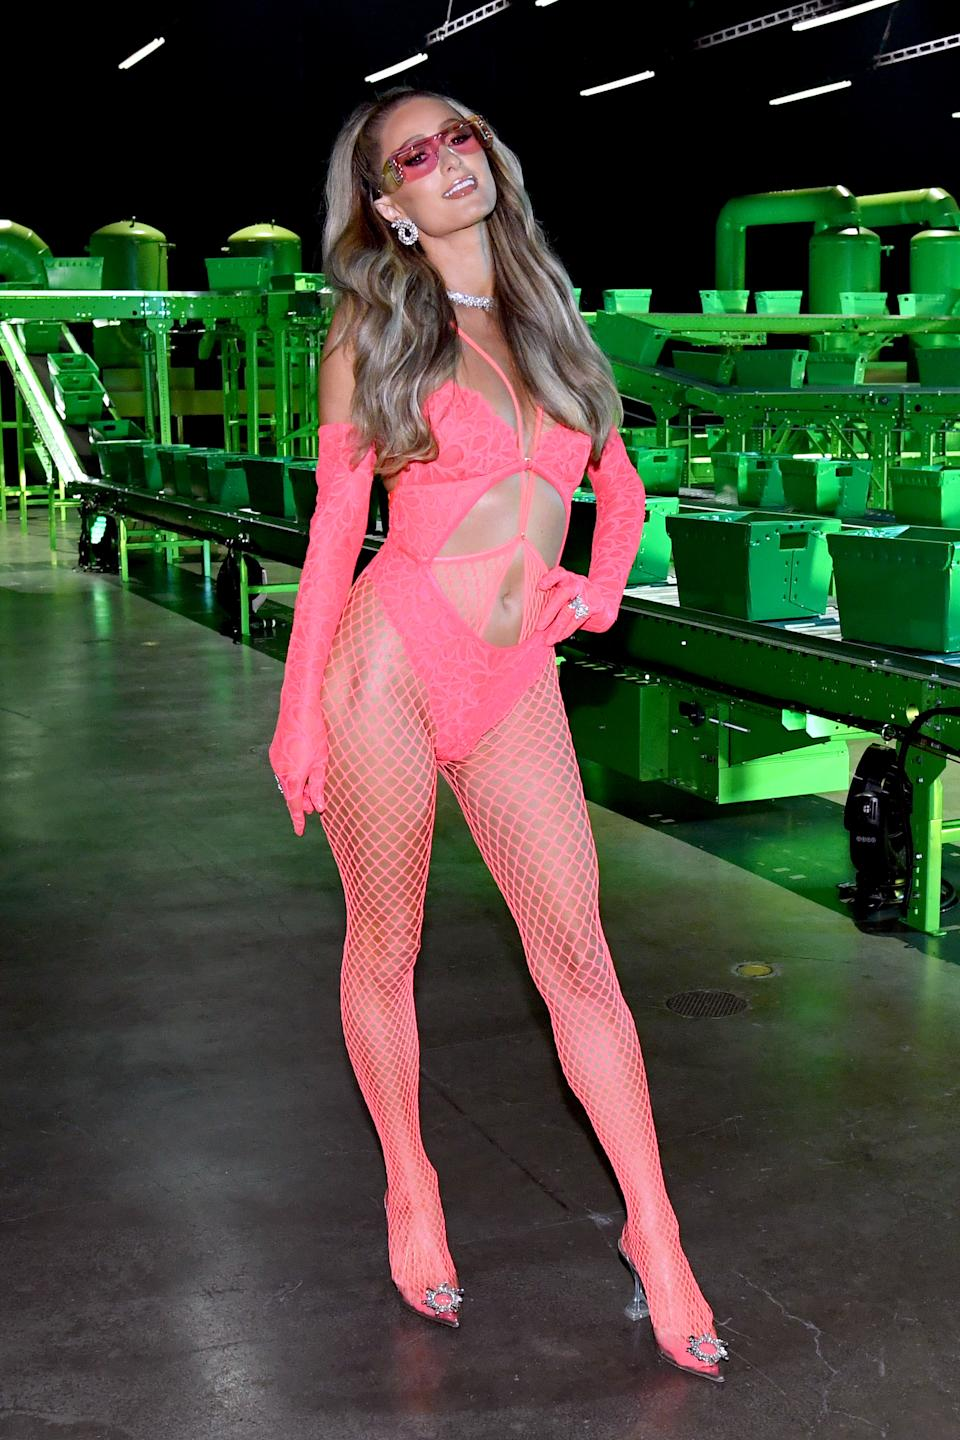 Paris Hilton wears vibrant pink bodysuit with fishnet tights for Savage x Fenty Vol. 2 presented by Amazon Prime Video show.  (Getty Images)